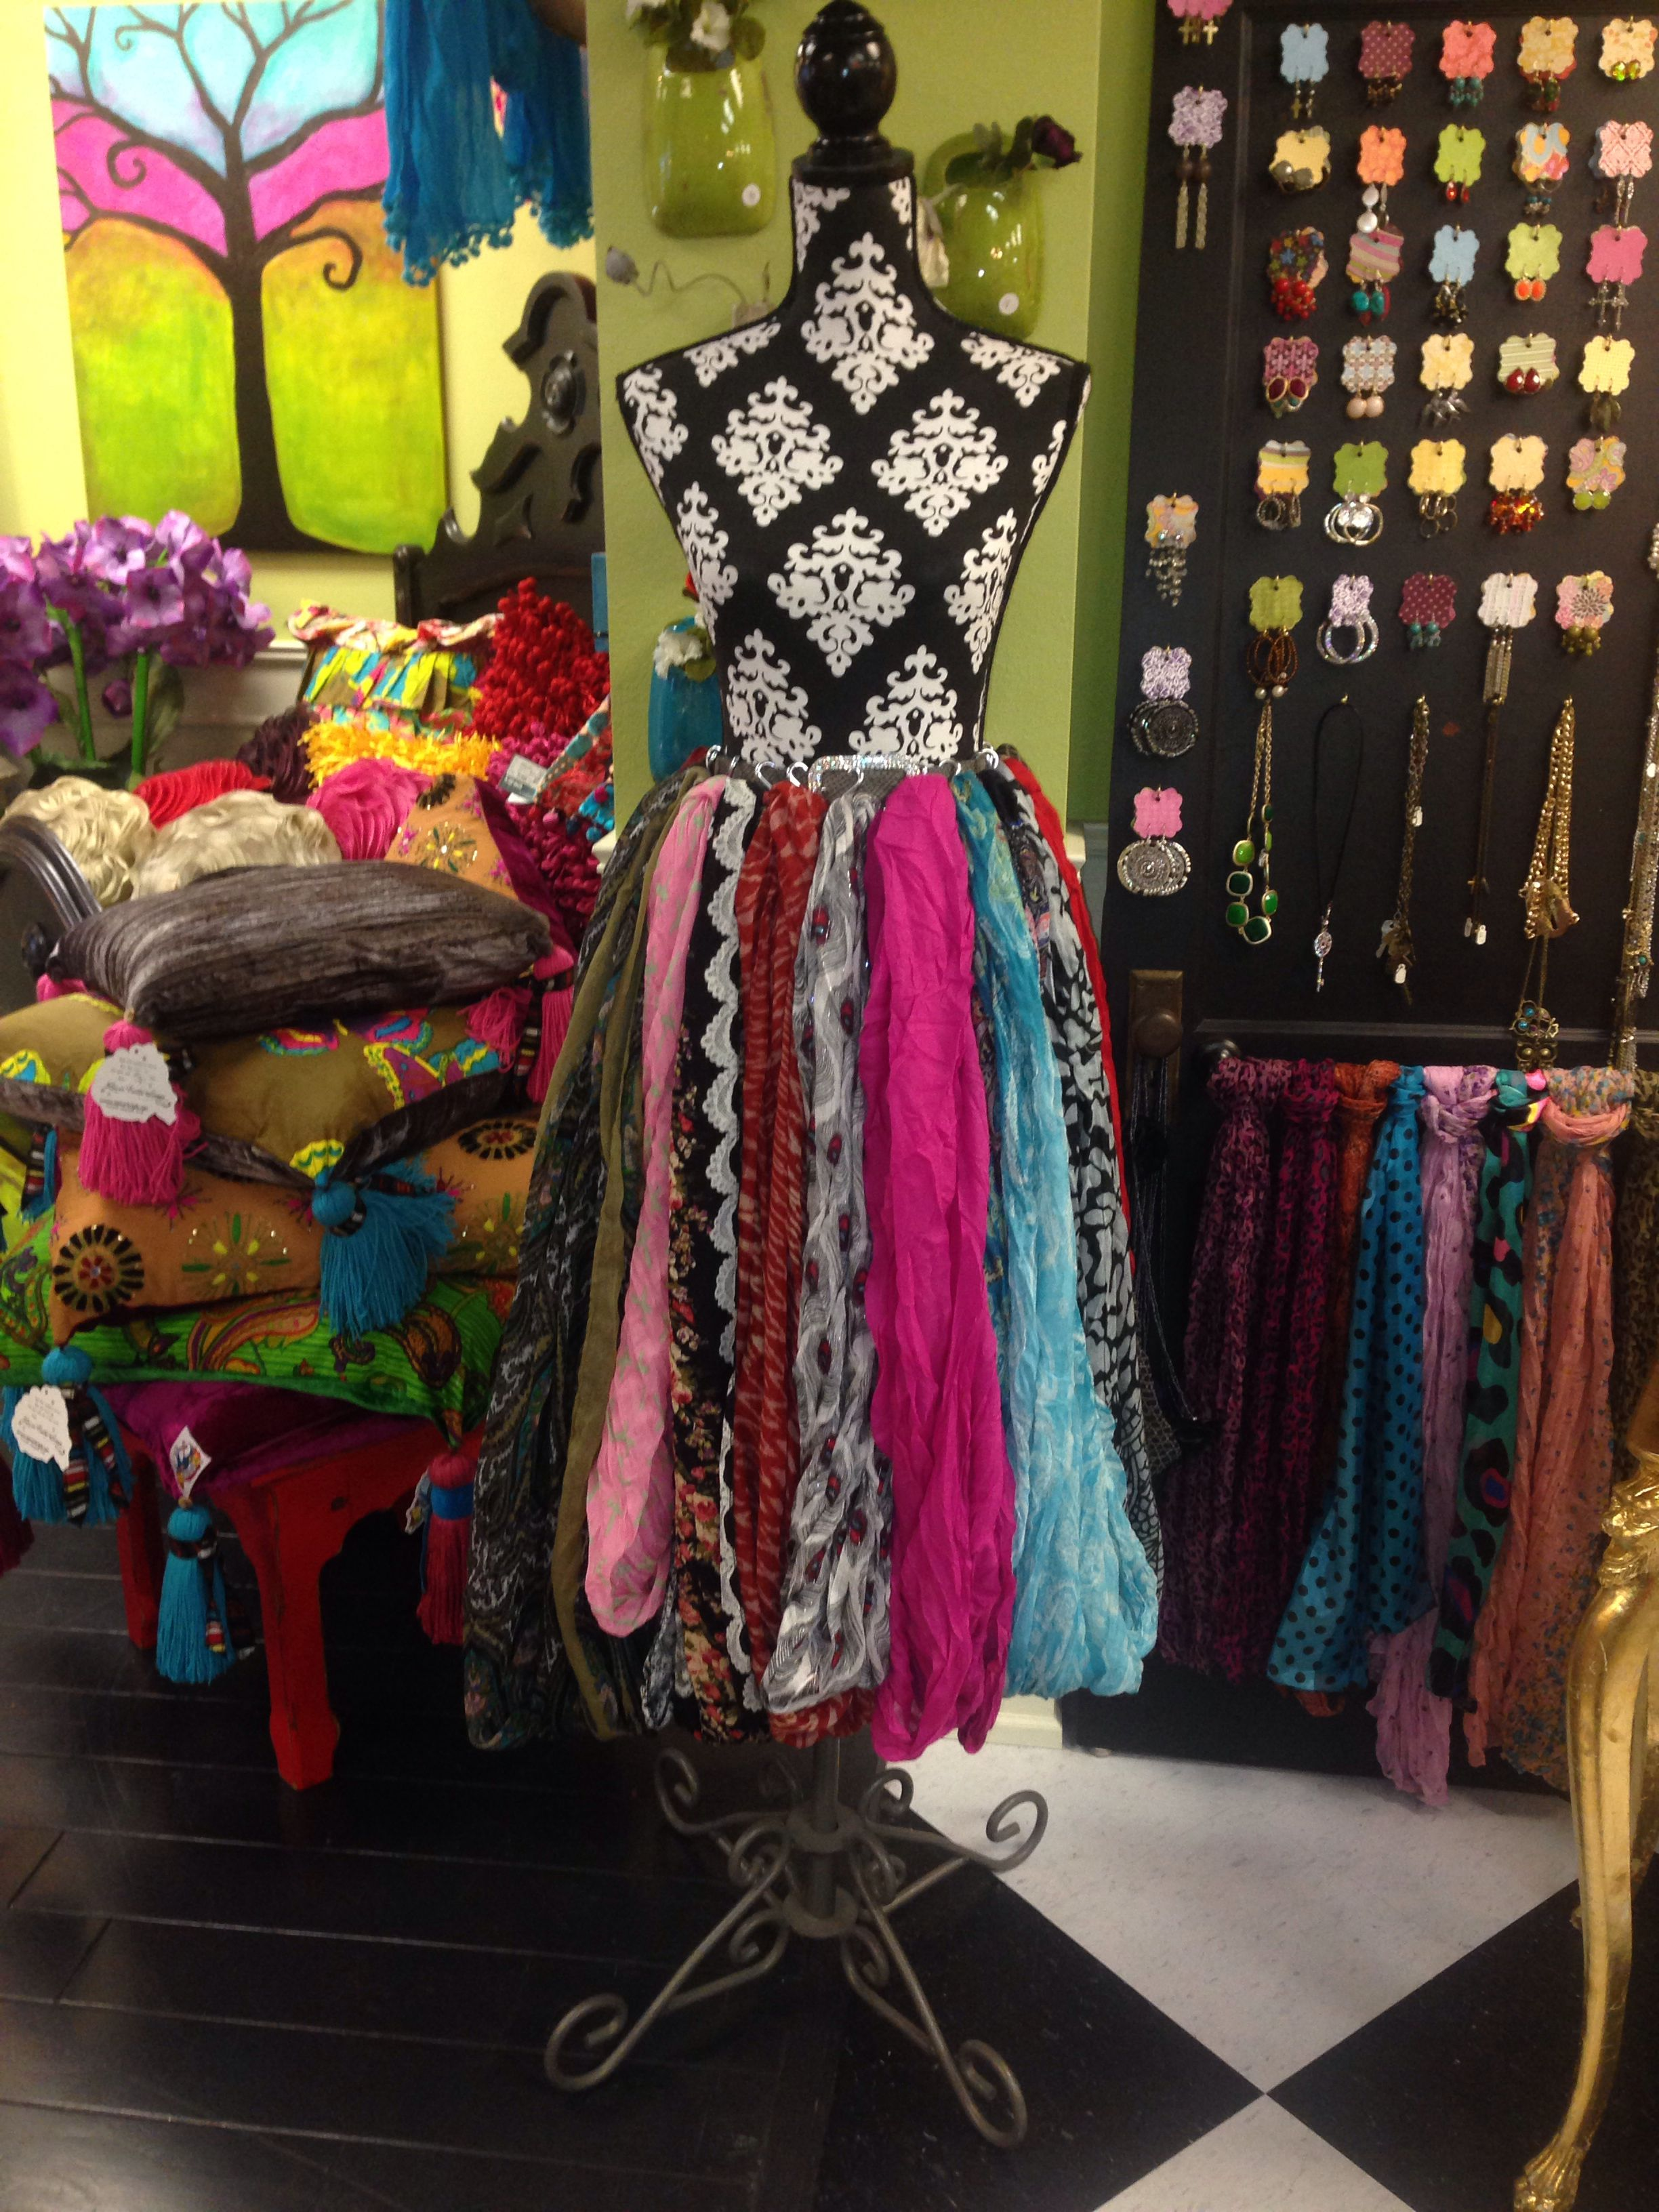 Pin By Missy Kaza On Posh Alley Boutique Scarf Display Clothing Displays